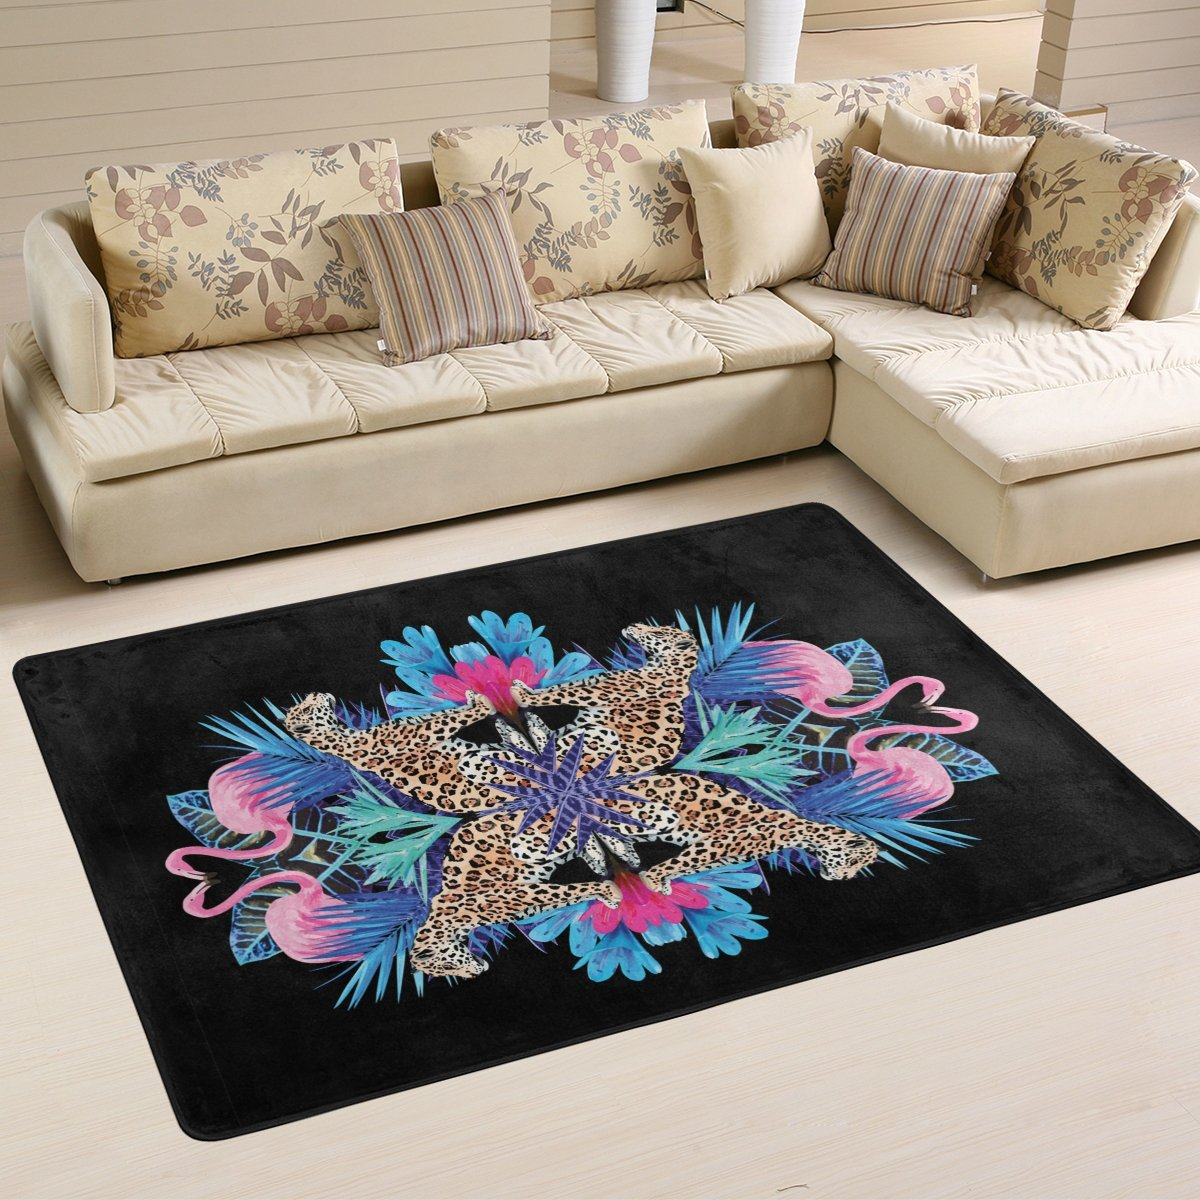 Exotic Bird Pink Flamingos, Leopards and Nature Tropical Plant Leaf Area Rug Pad Non-Slip Kitchen Floor Mat for Living Room Bedroom 4 x 6 Doormats Home Decor